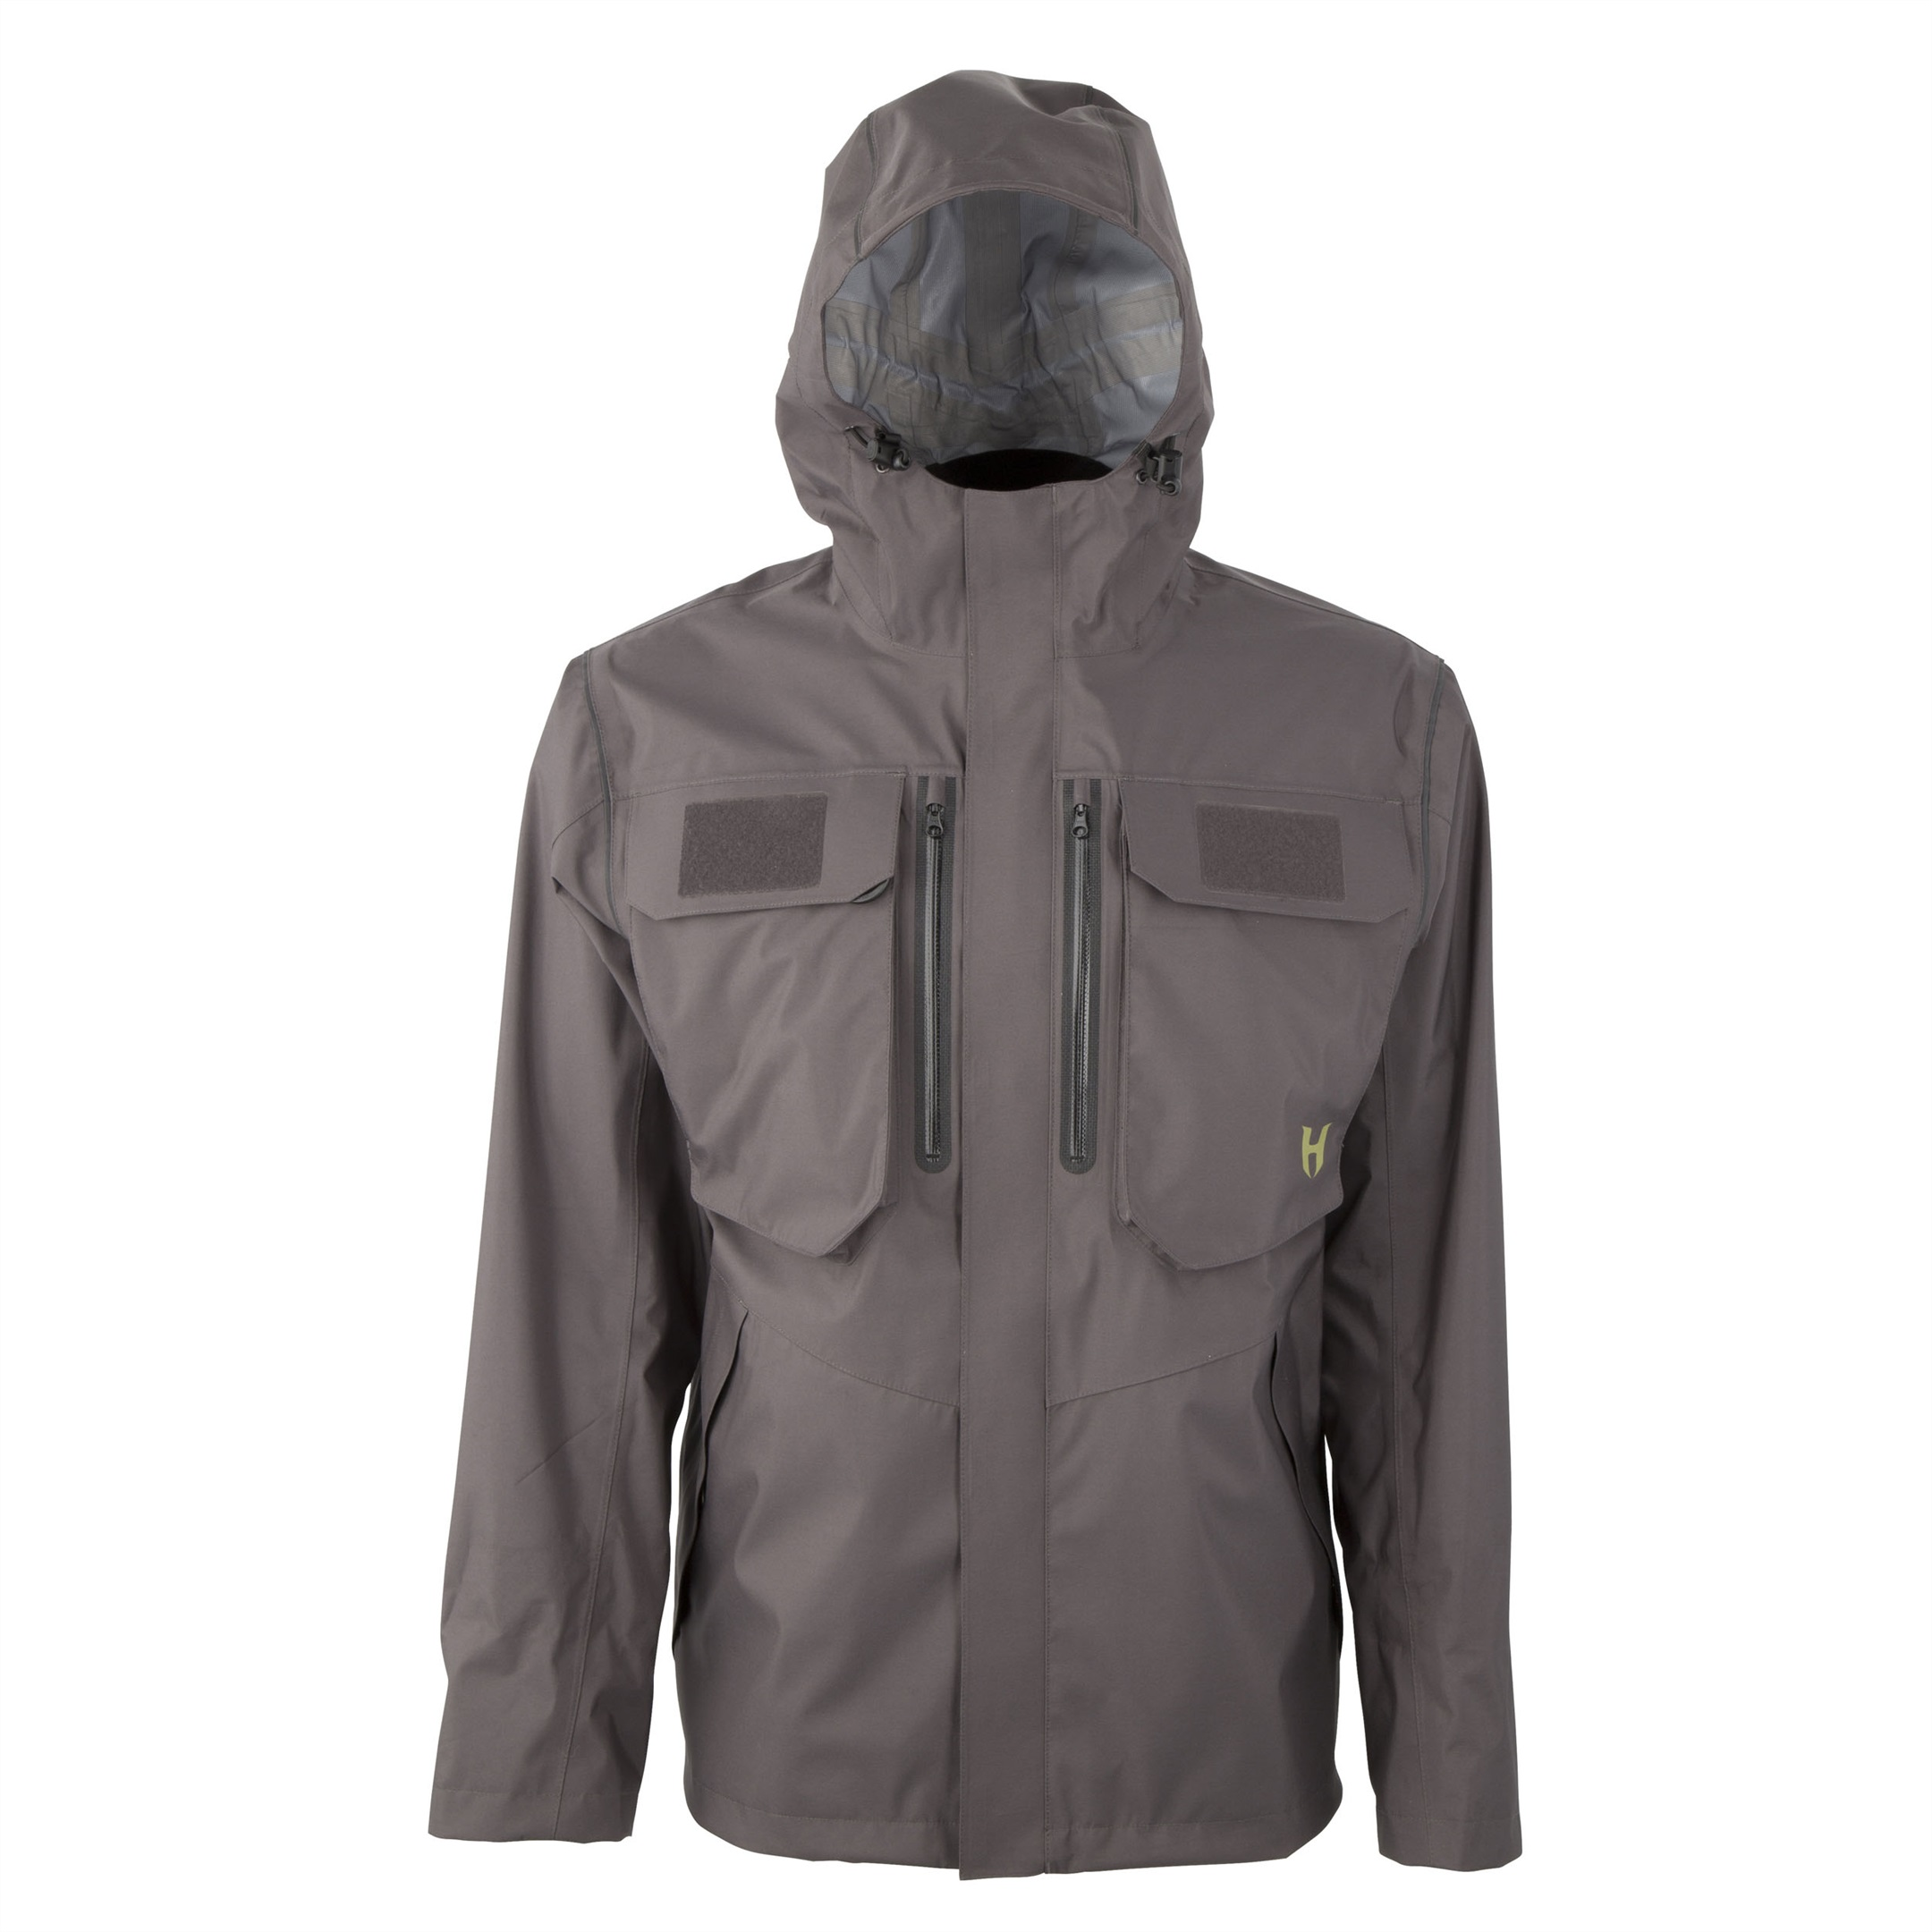 HODGMAN - Aesis Shell Jacket Charcoal/Black